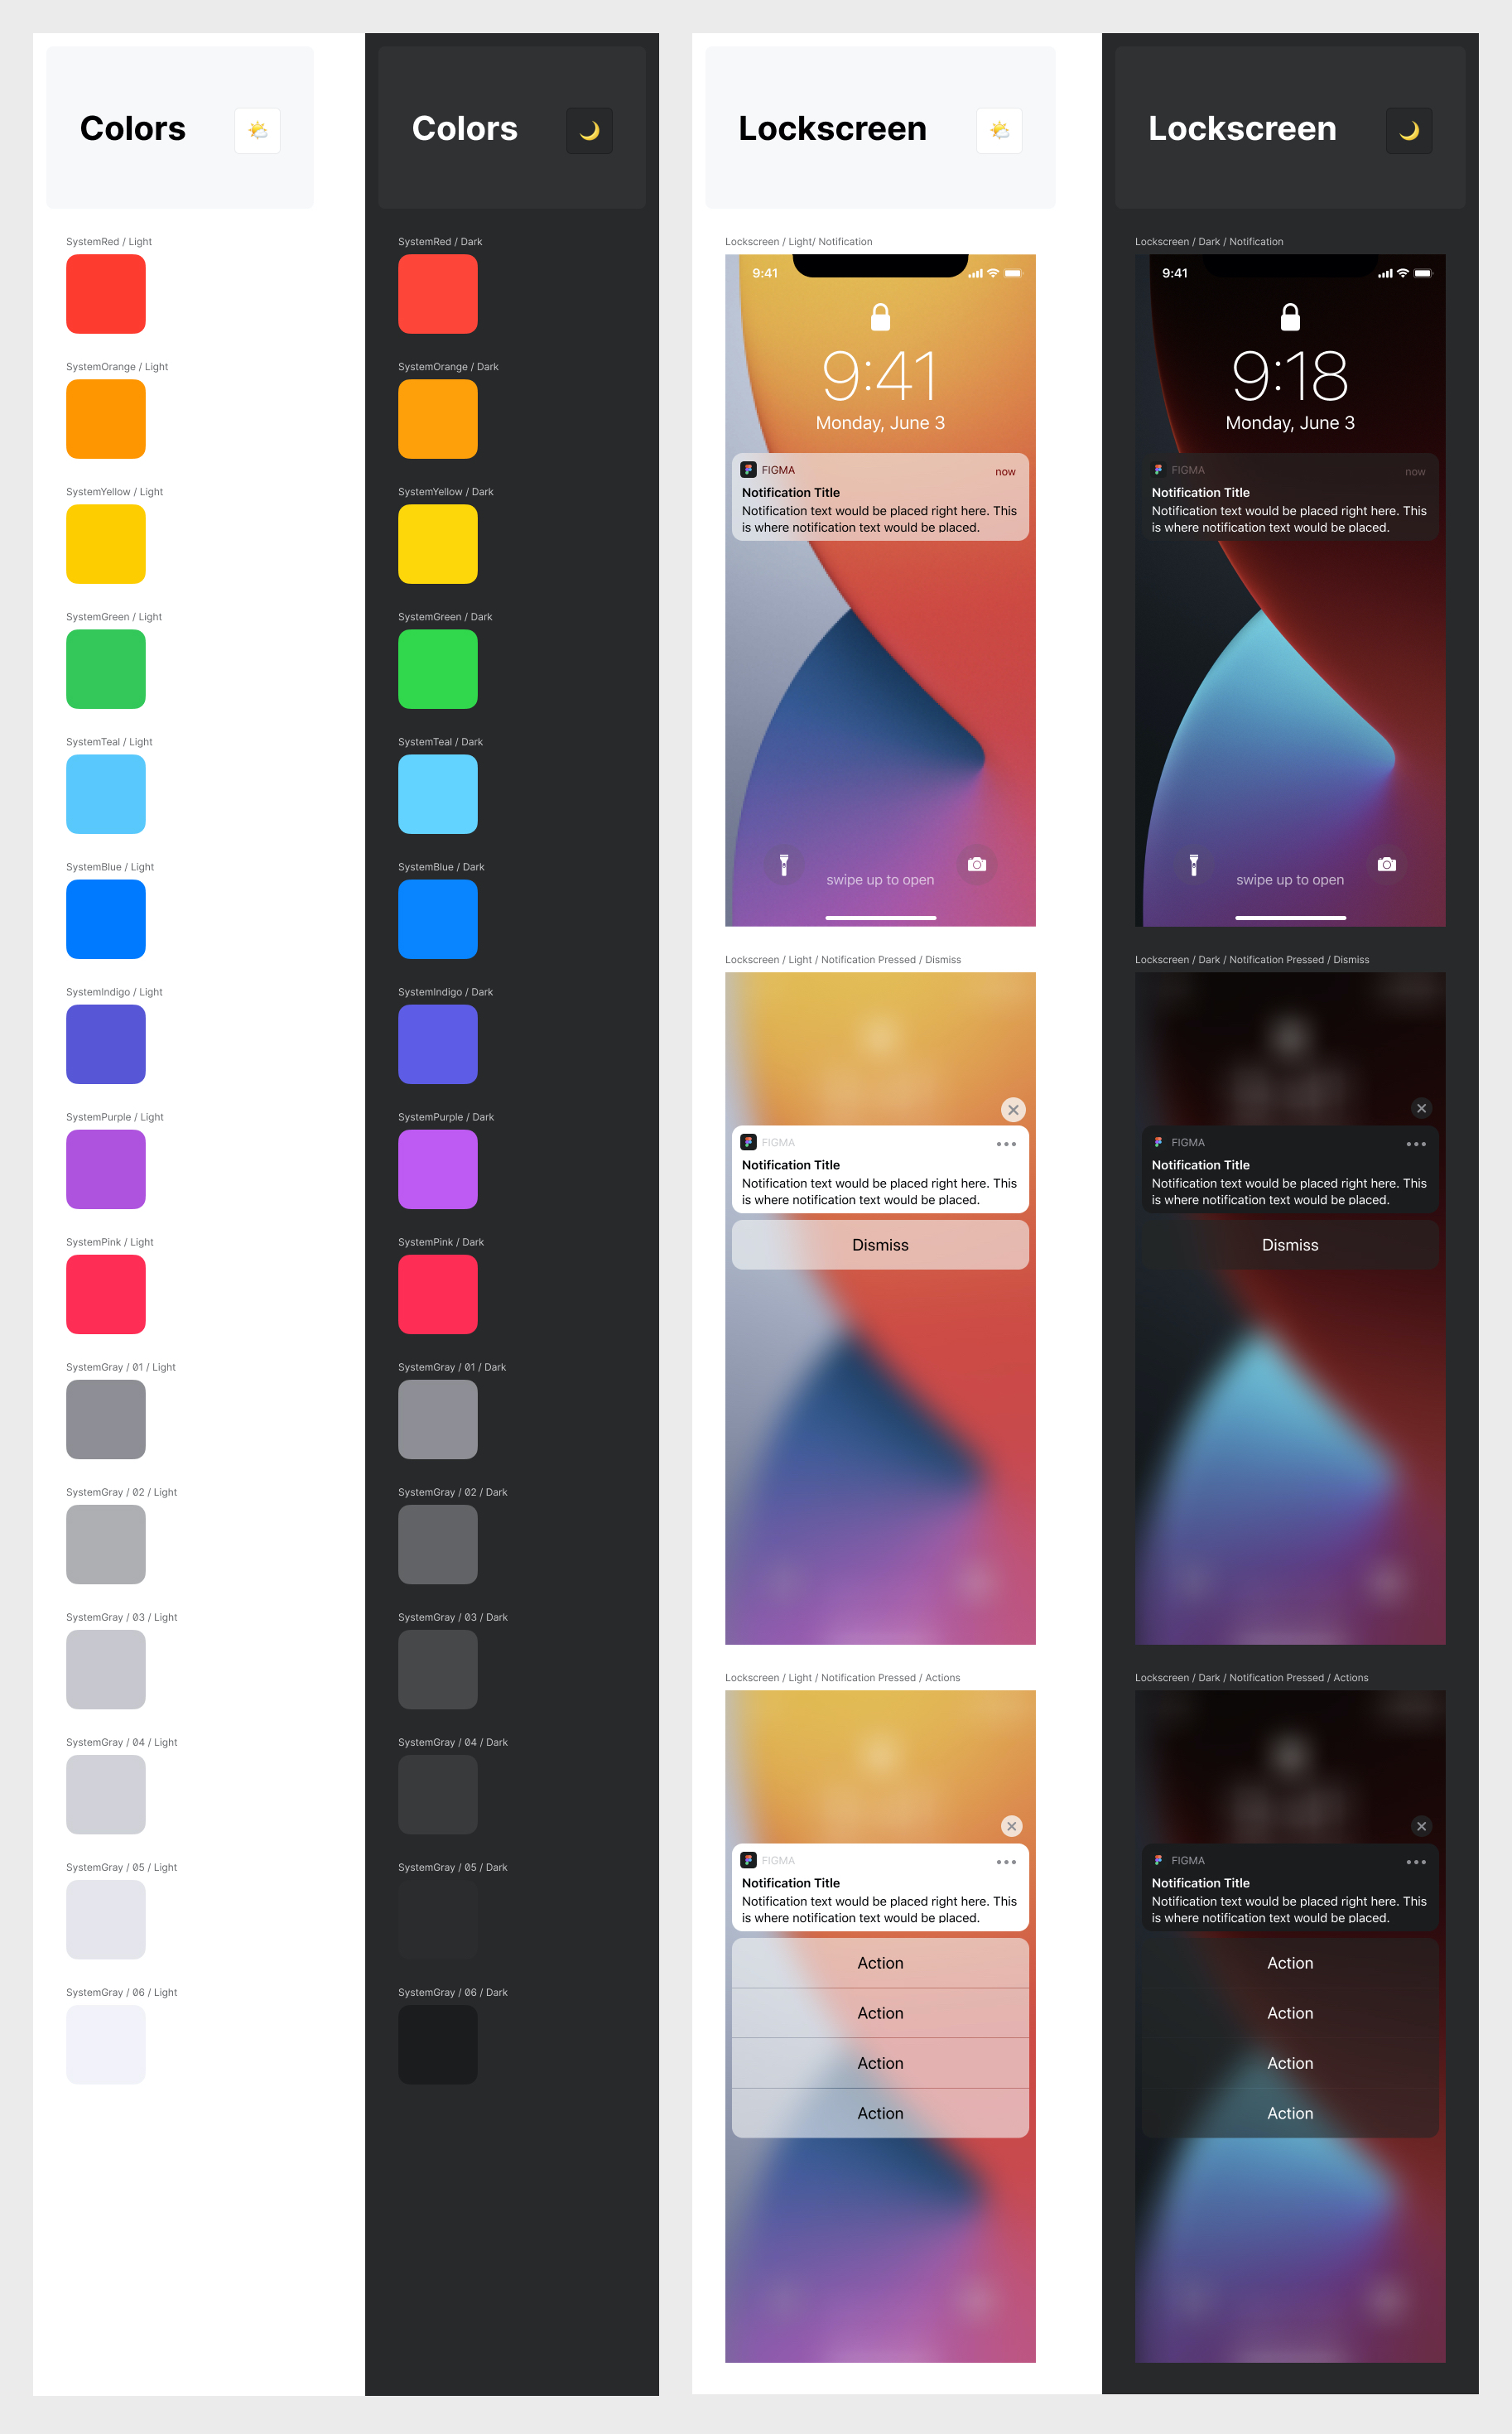 iOS/iPadOS 14 Free UI Kit for Figma - I found myself frequently trying to locate many misplaced common iOS/iPadOS system-level interface elements, so decided to build and collect them all in one place. All of the elements here are named for easy instance-swapping, have constraints applied, and use auto layout where appropriate.